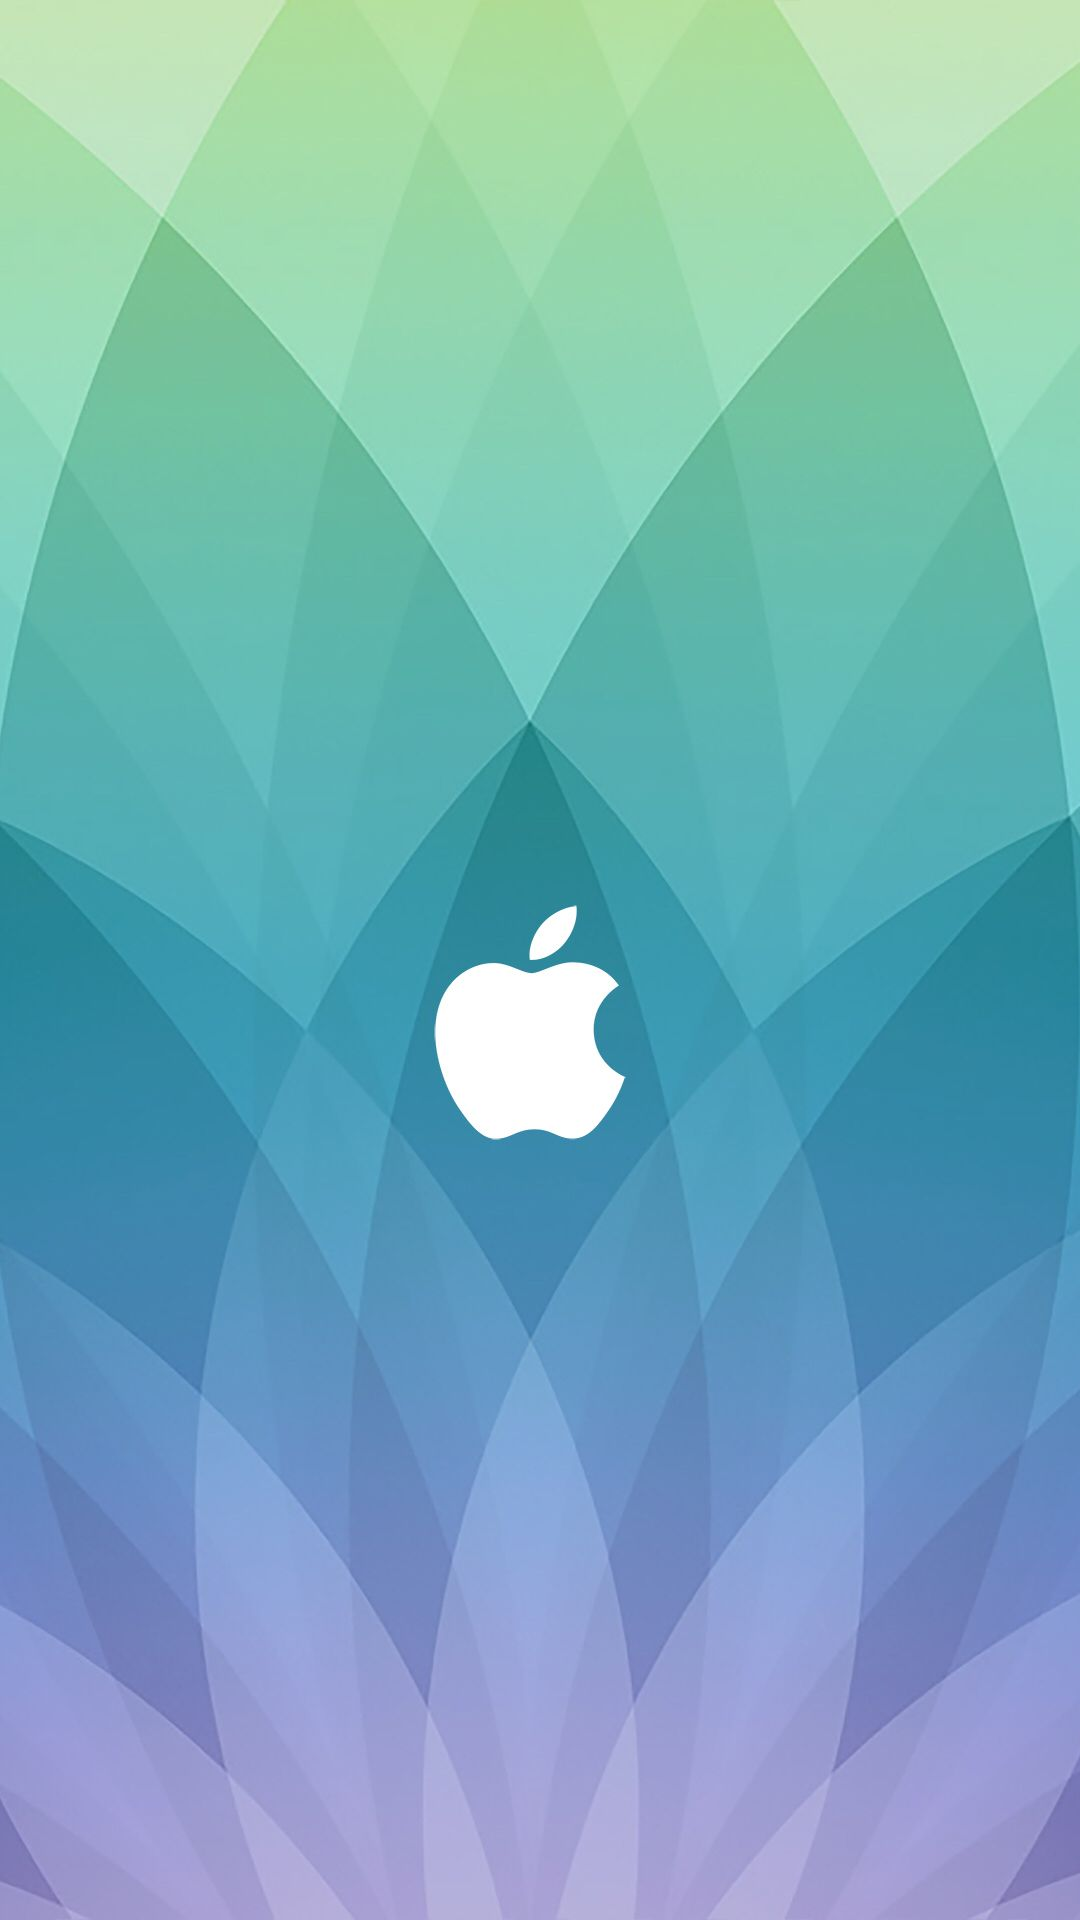 Wallpaper quiksilver iphone 5 - Ar7 March 9 Event Wallpaper Iphone Apple Logo Jpeg Jpeg 1080x1920 Wallpaper Mobile Pinterest Wallpaper Apple Images And Wallpaper